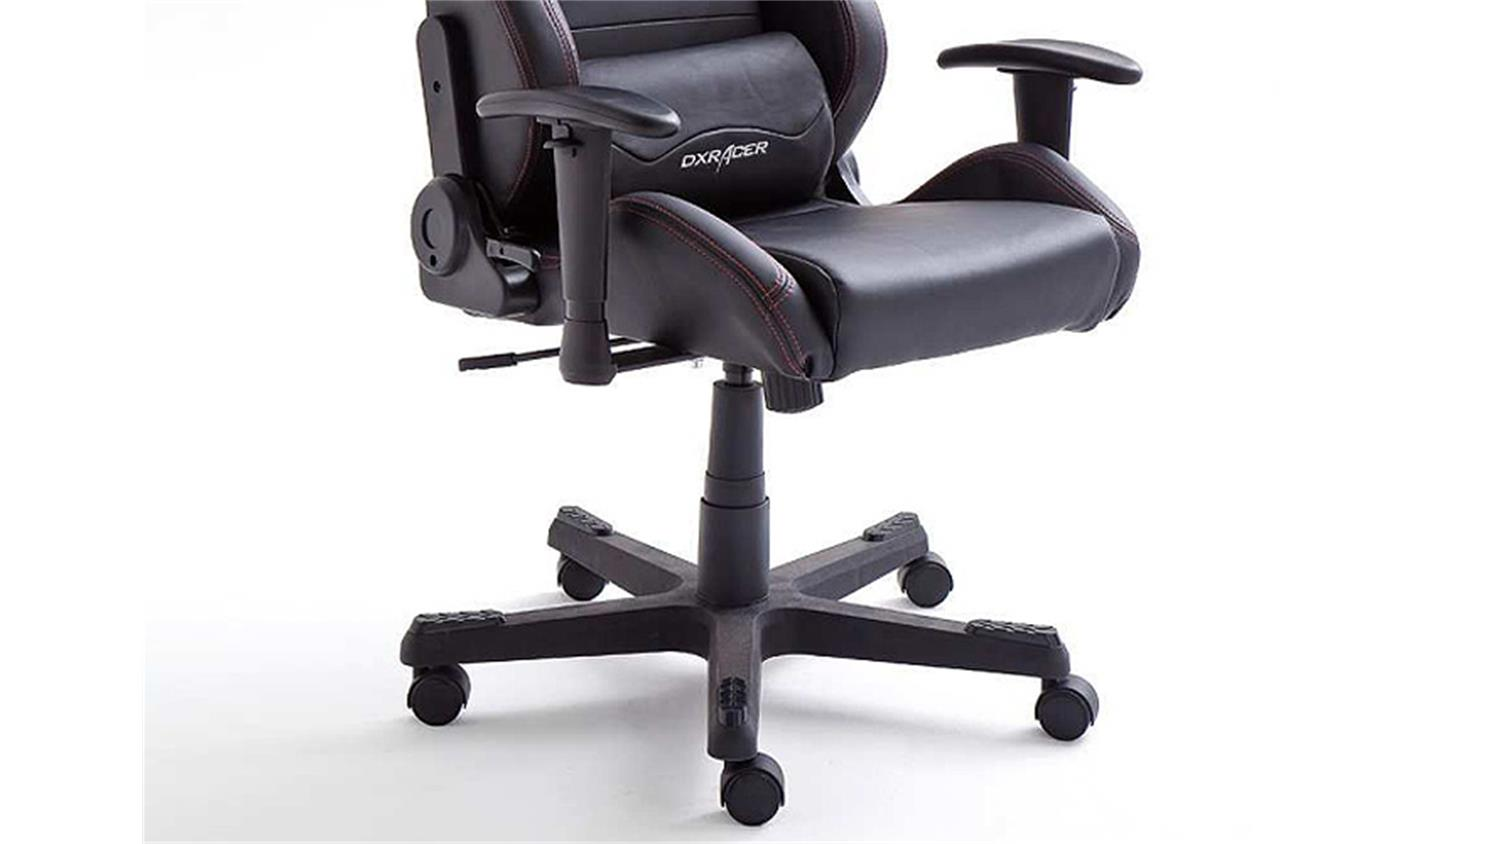 schreibtischstuhl b rostuhl dx racer 3 lederlook schwarz game chair. Black Bedroom Furniture Sets. Home Design Ideas